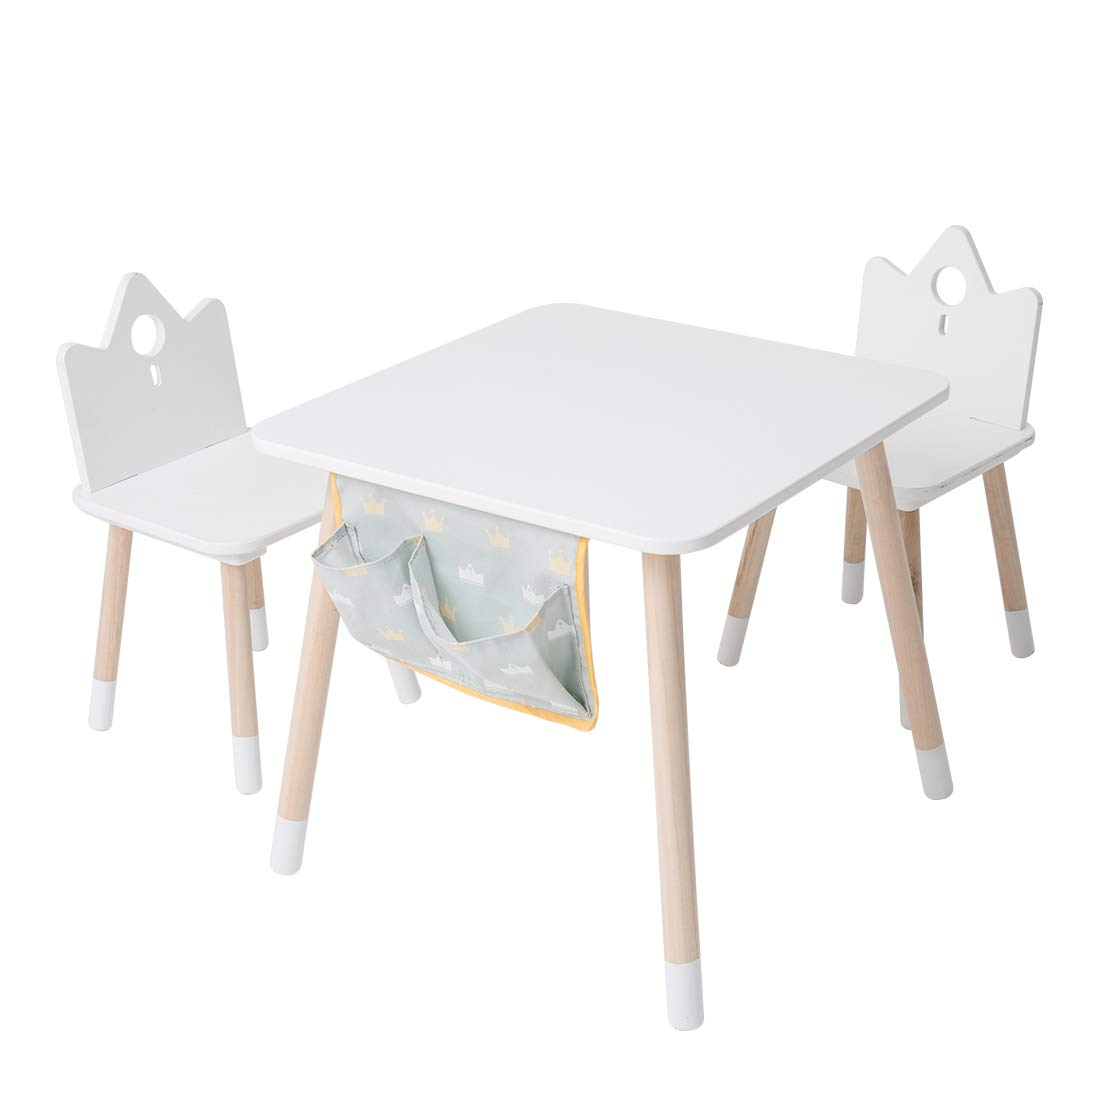 Kids wood Play Around Activity Table and Chair Set, White Toddler Table for 1-5 Years, 3-Piece Set Desk with Storage Bag Modern Kid Furniture,Kid Desk Chair/Child Learning table/Room Table/Study Desk by JOLIE VALLÉE TOYS & HOME